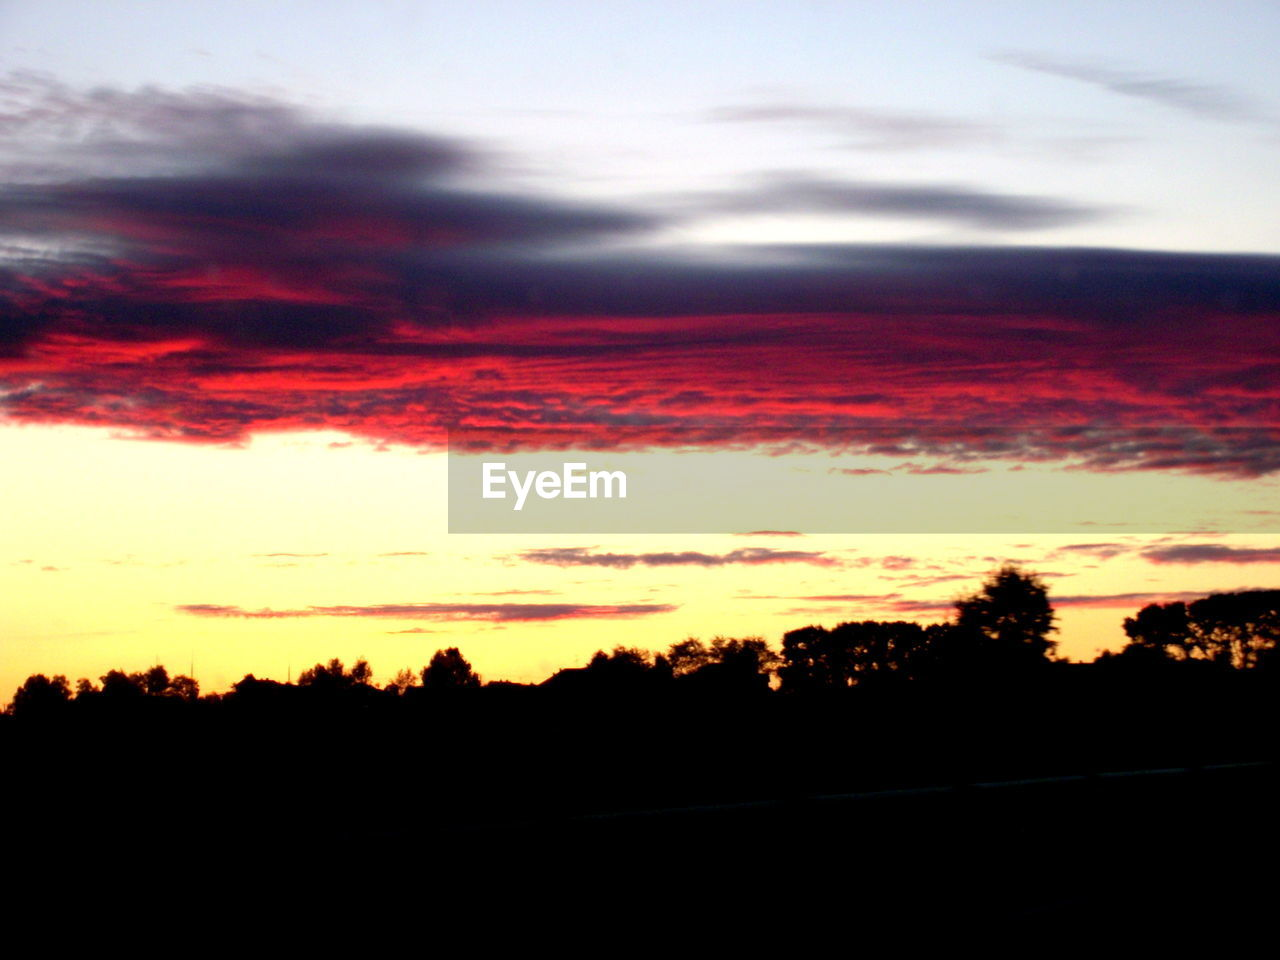 sunset, silhouette, beauty in nature, sky, scenics, nature, orange color, tranquil scene, cloud - sky, tranquility, majestic, dramatic sky, no people, tree, landscape, outdoors, awe, scenery